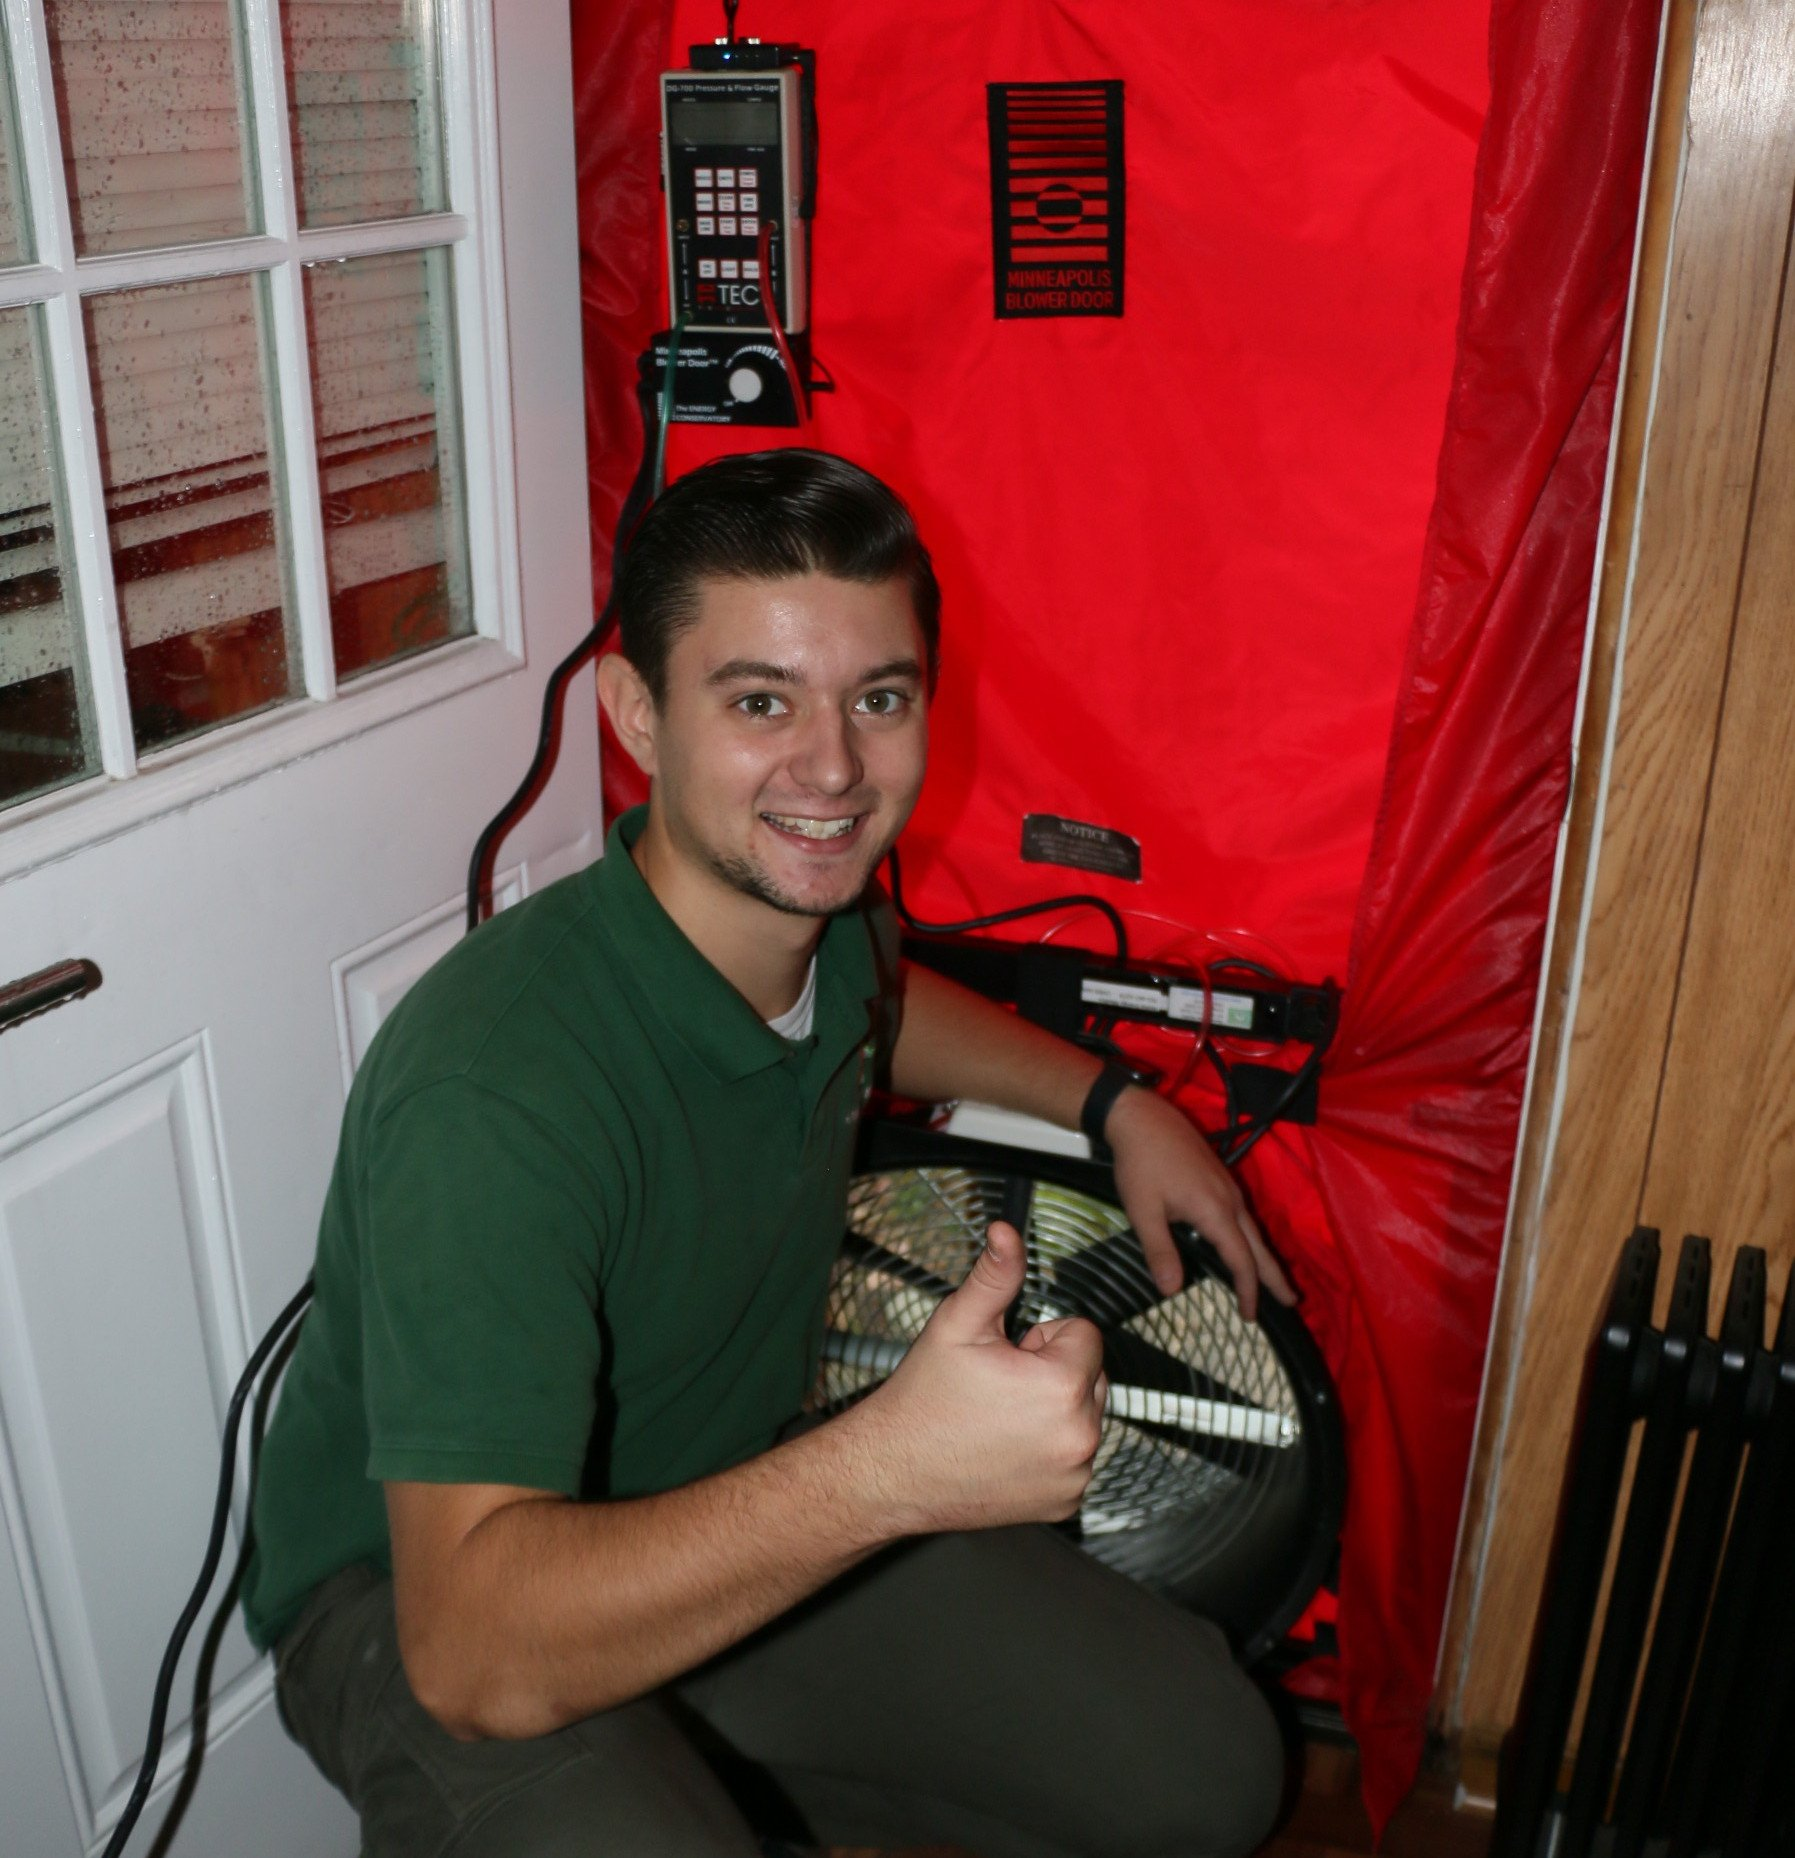 technician servicing home